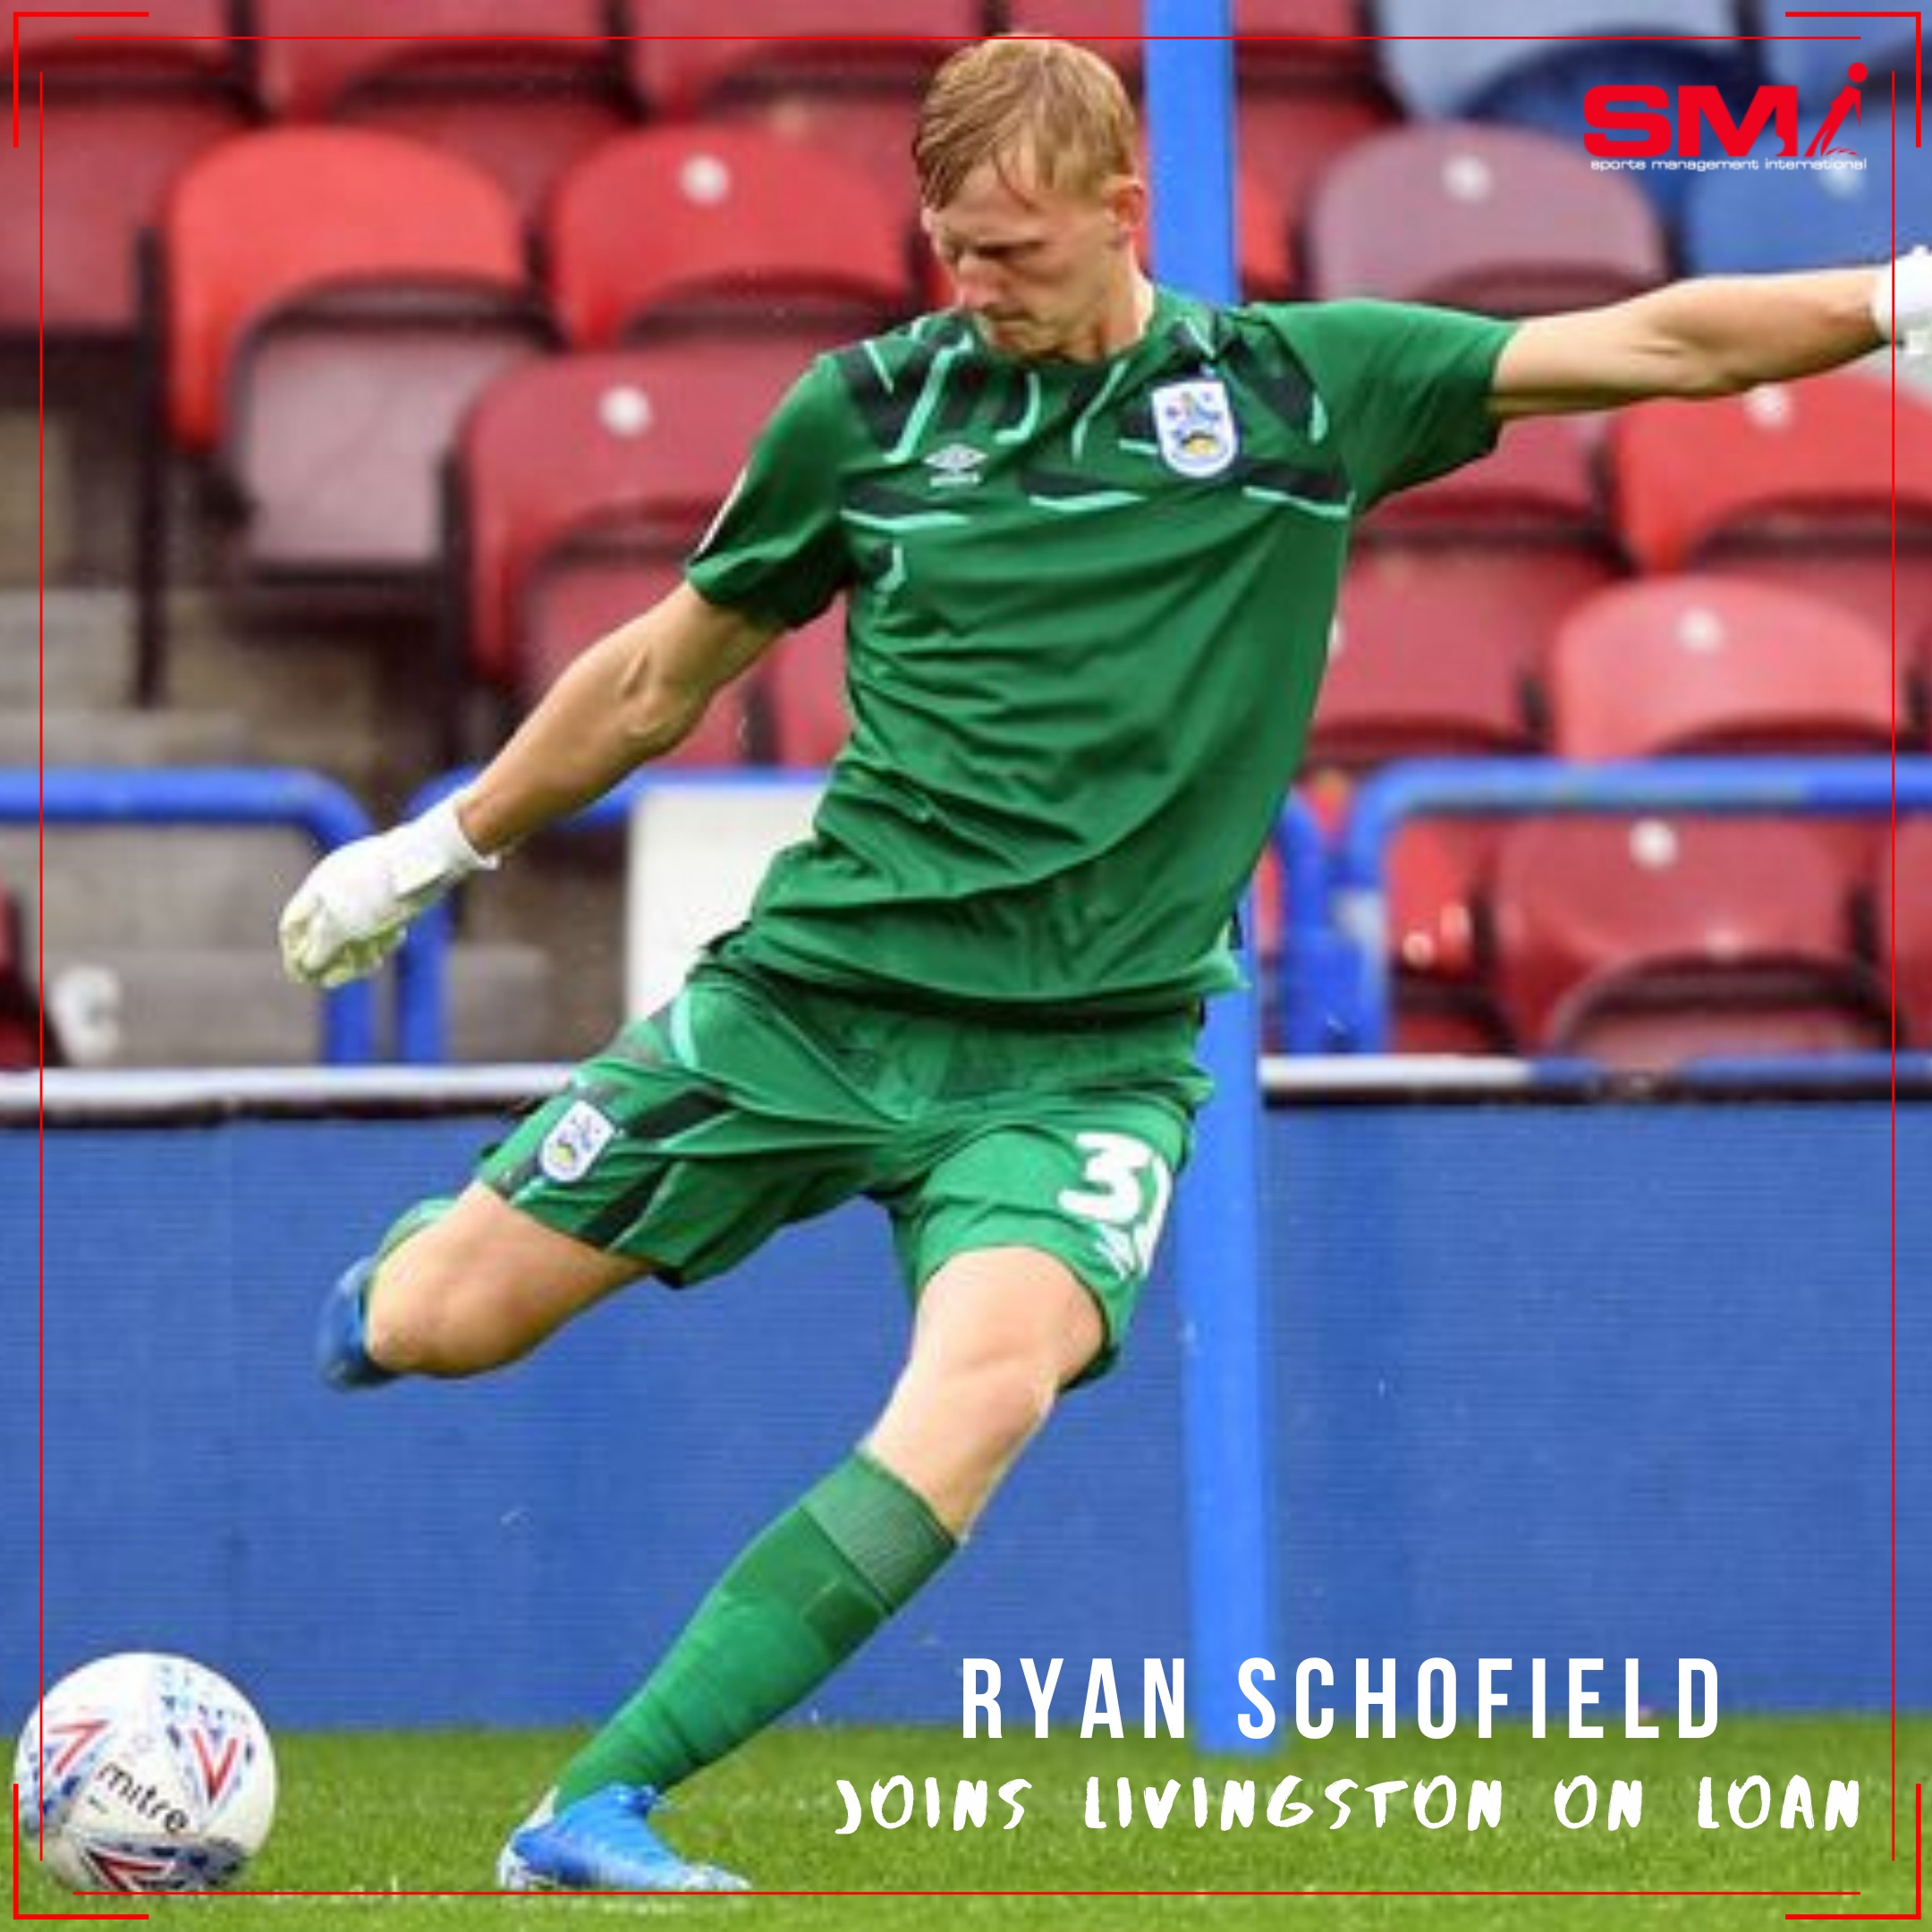 Ryan Schofield signs for Livingston on loan